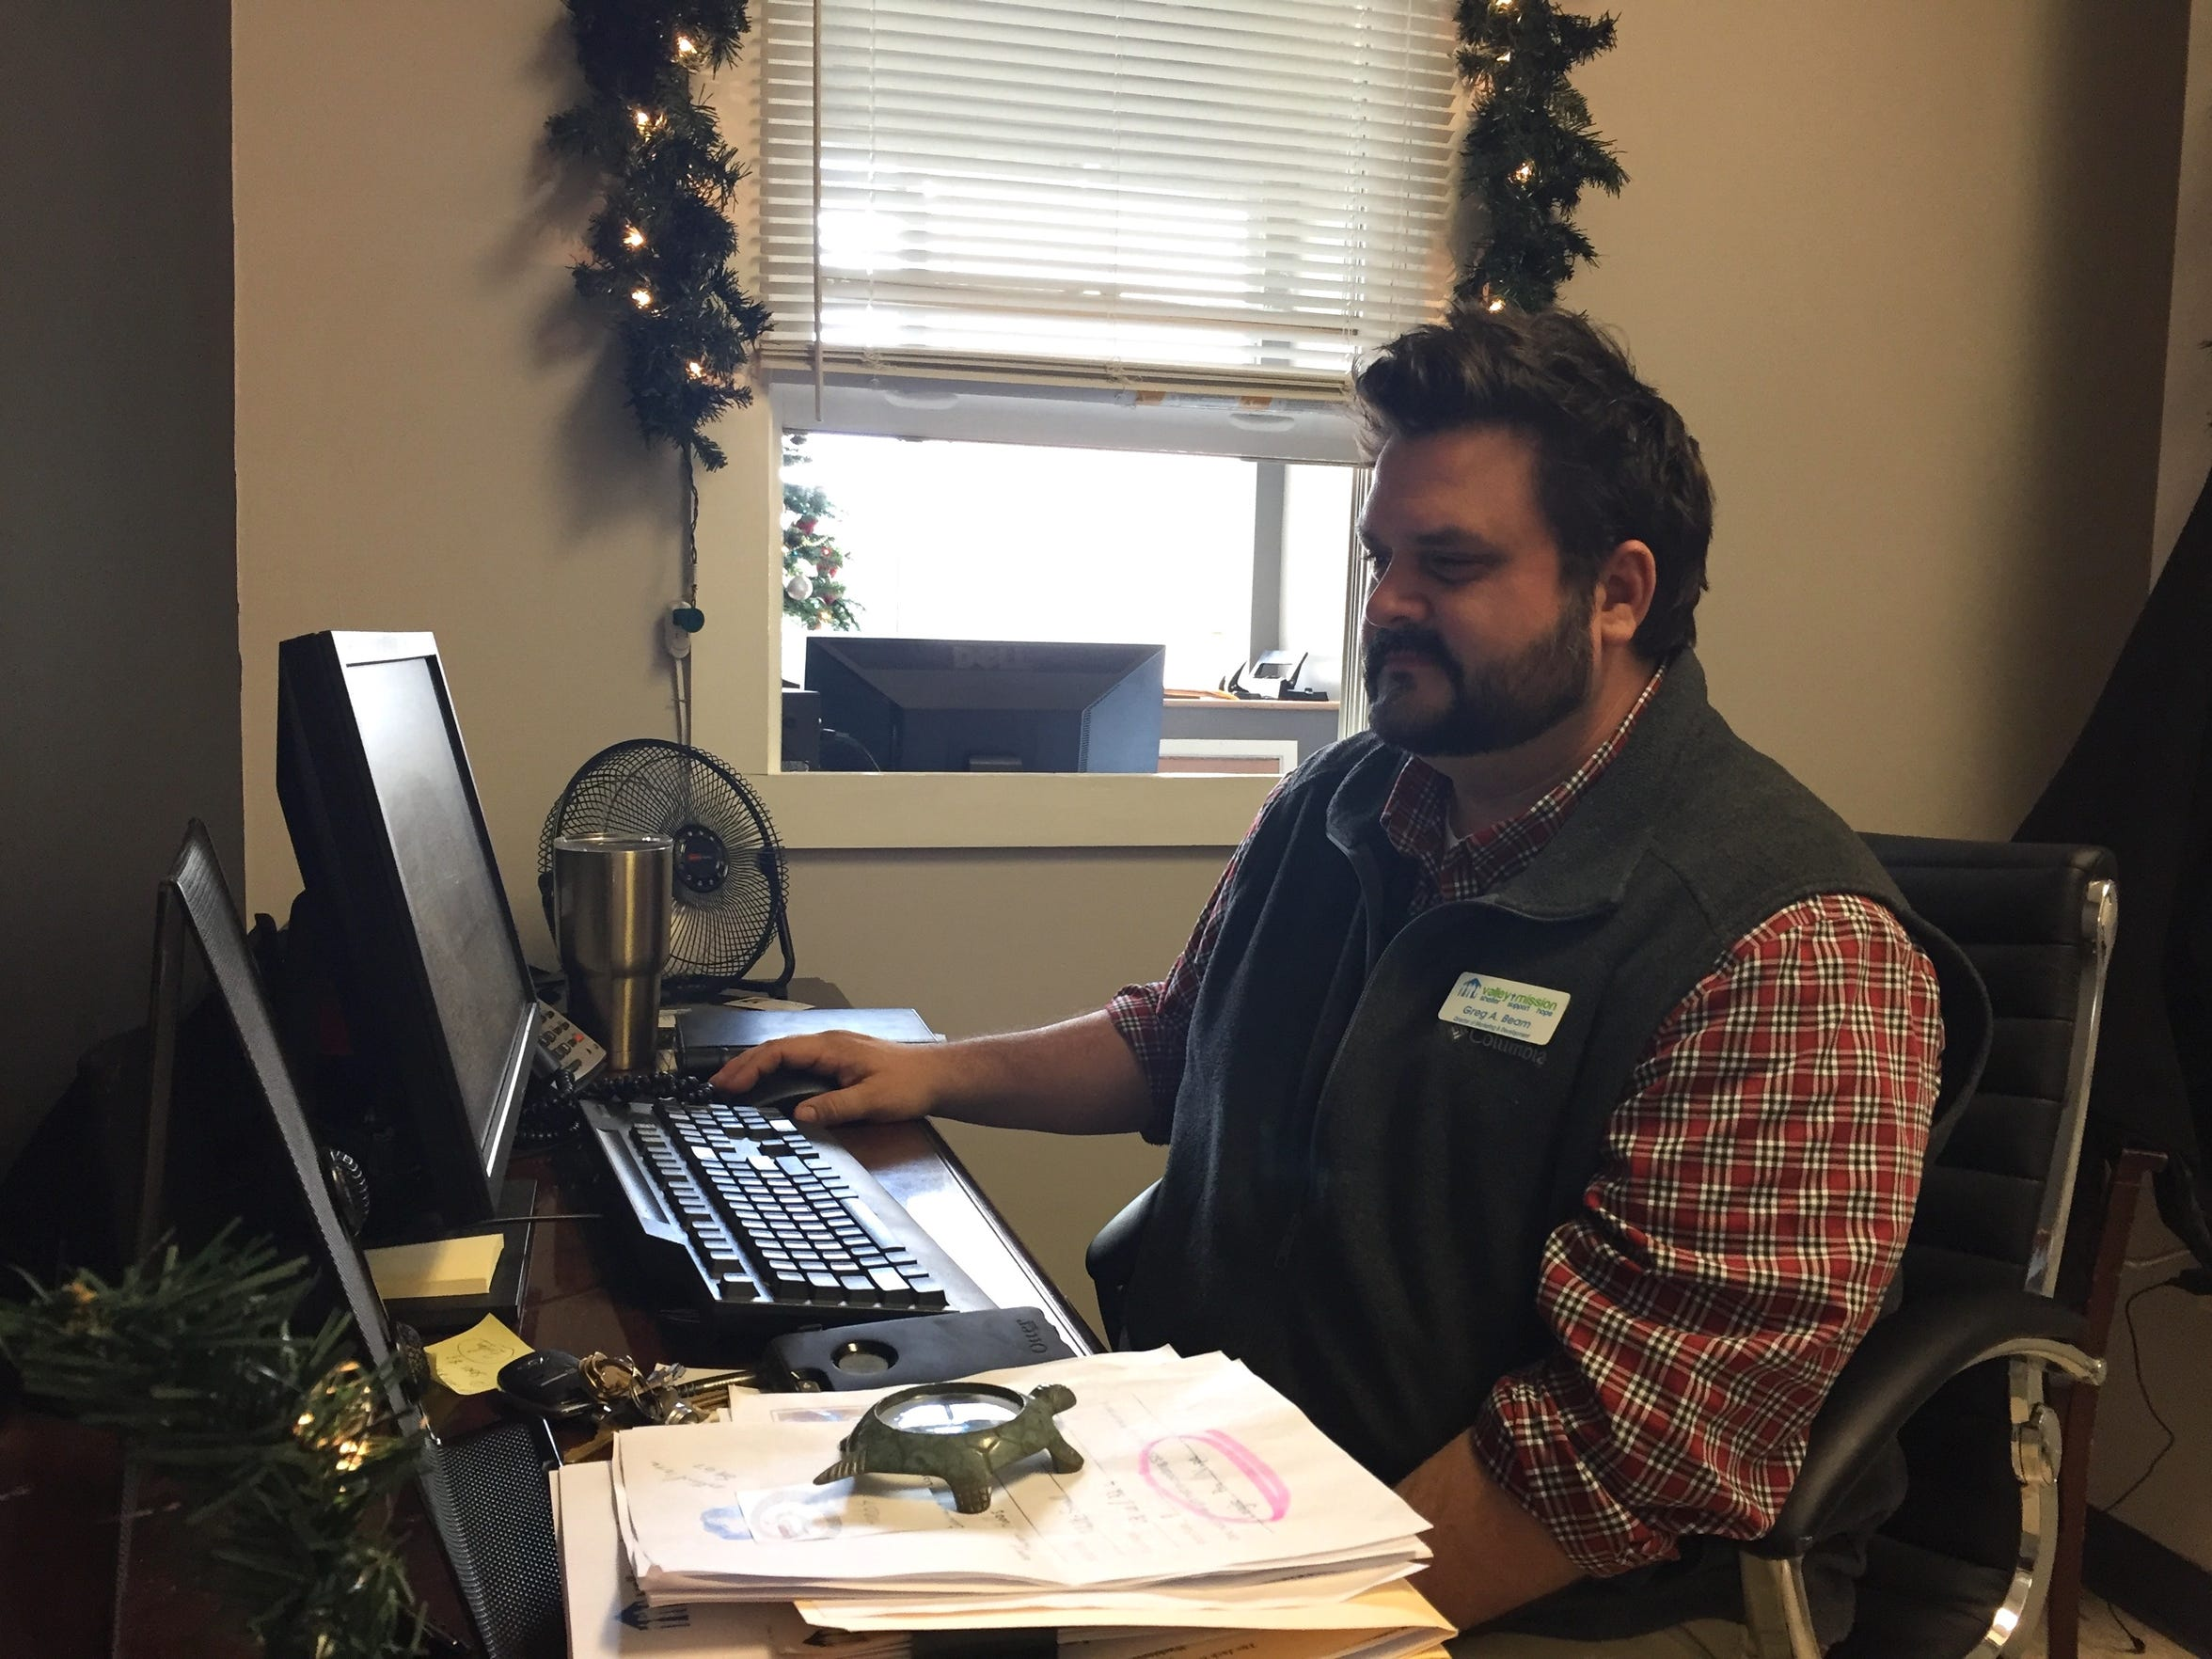 Greg Beam, director of marketing and development, in his office at the Valley Mission in Staunton on Monday, Dec. 12, 2016.